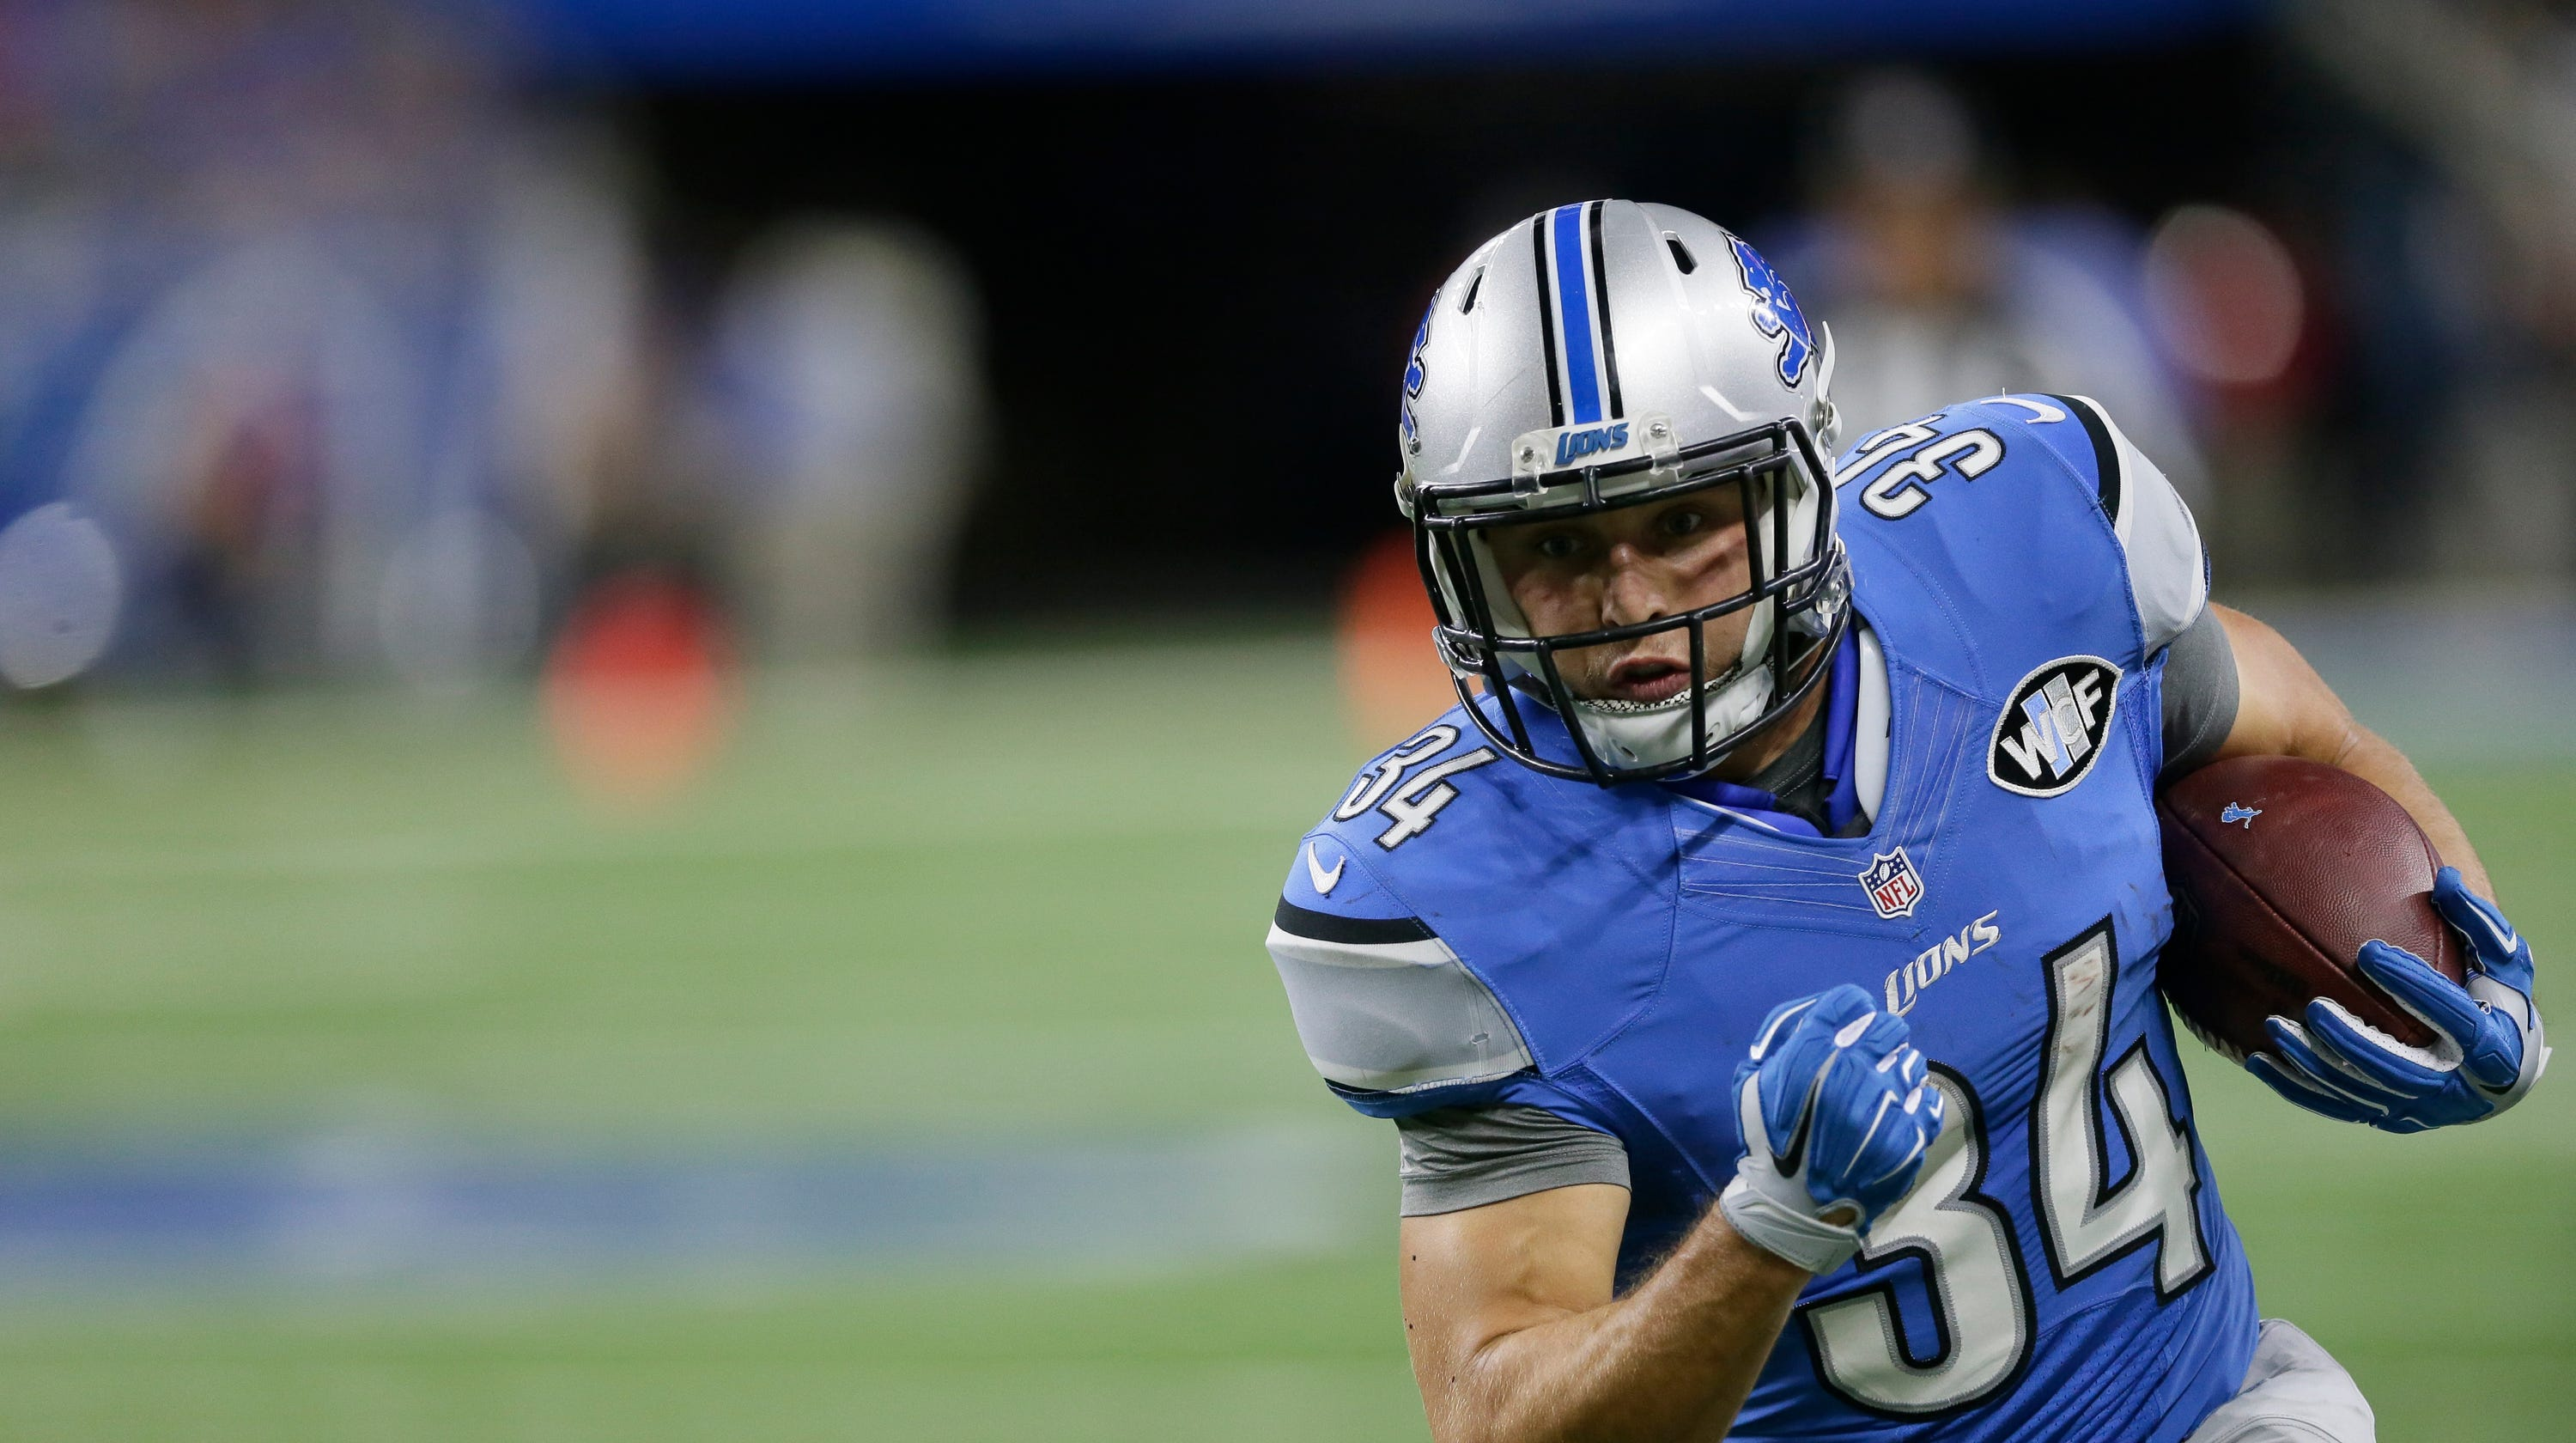 the latest a1a46 be8f7 Zach Zenner reflects on fourth NFL season, looks ahead to fifth